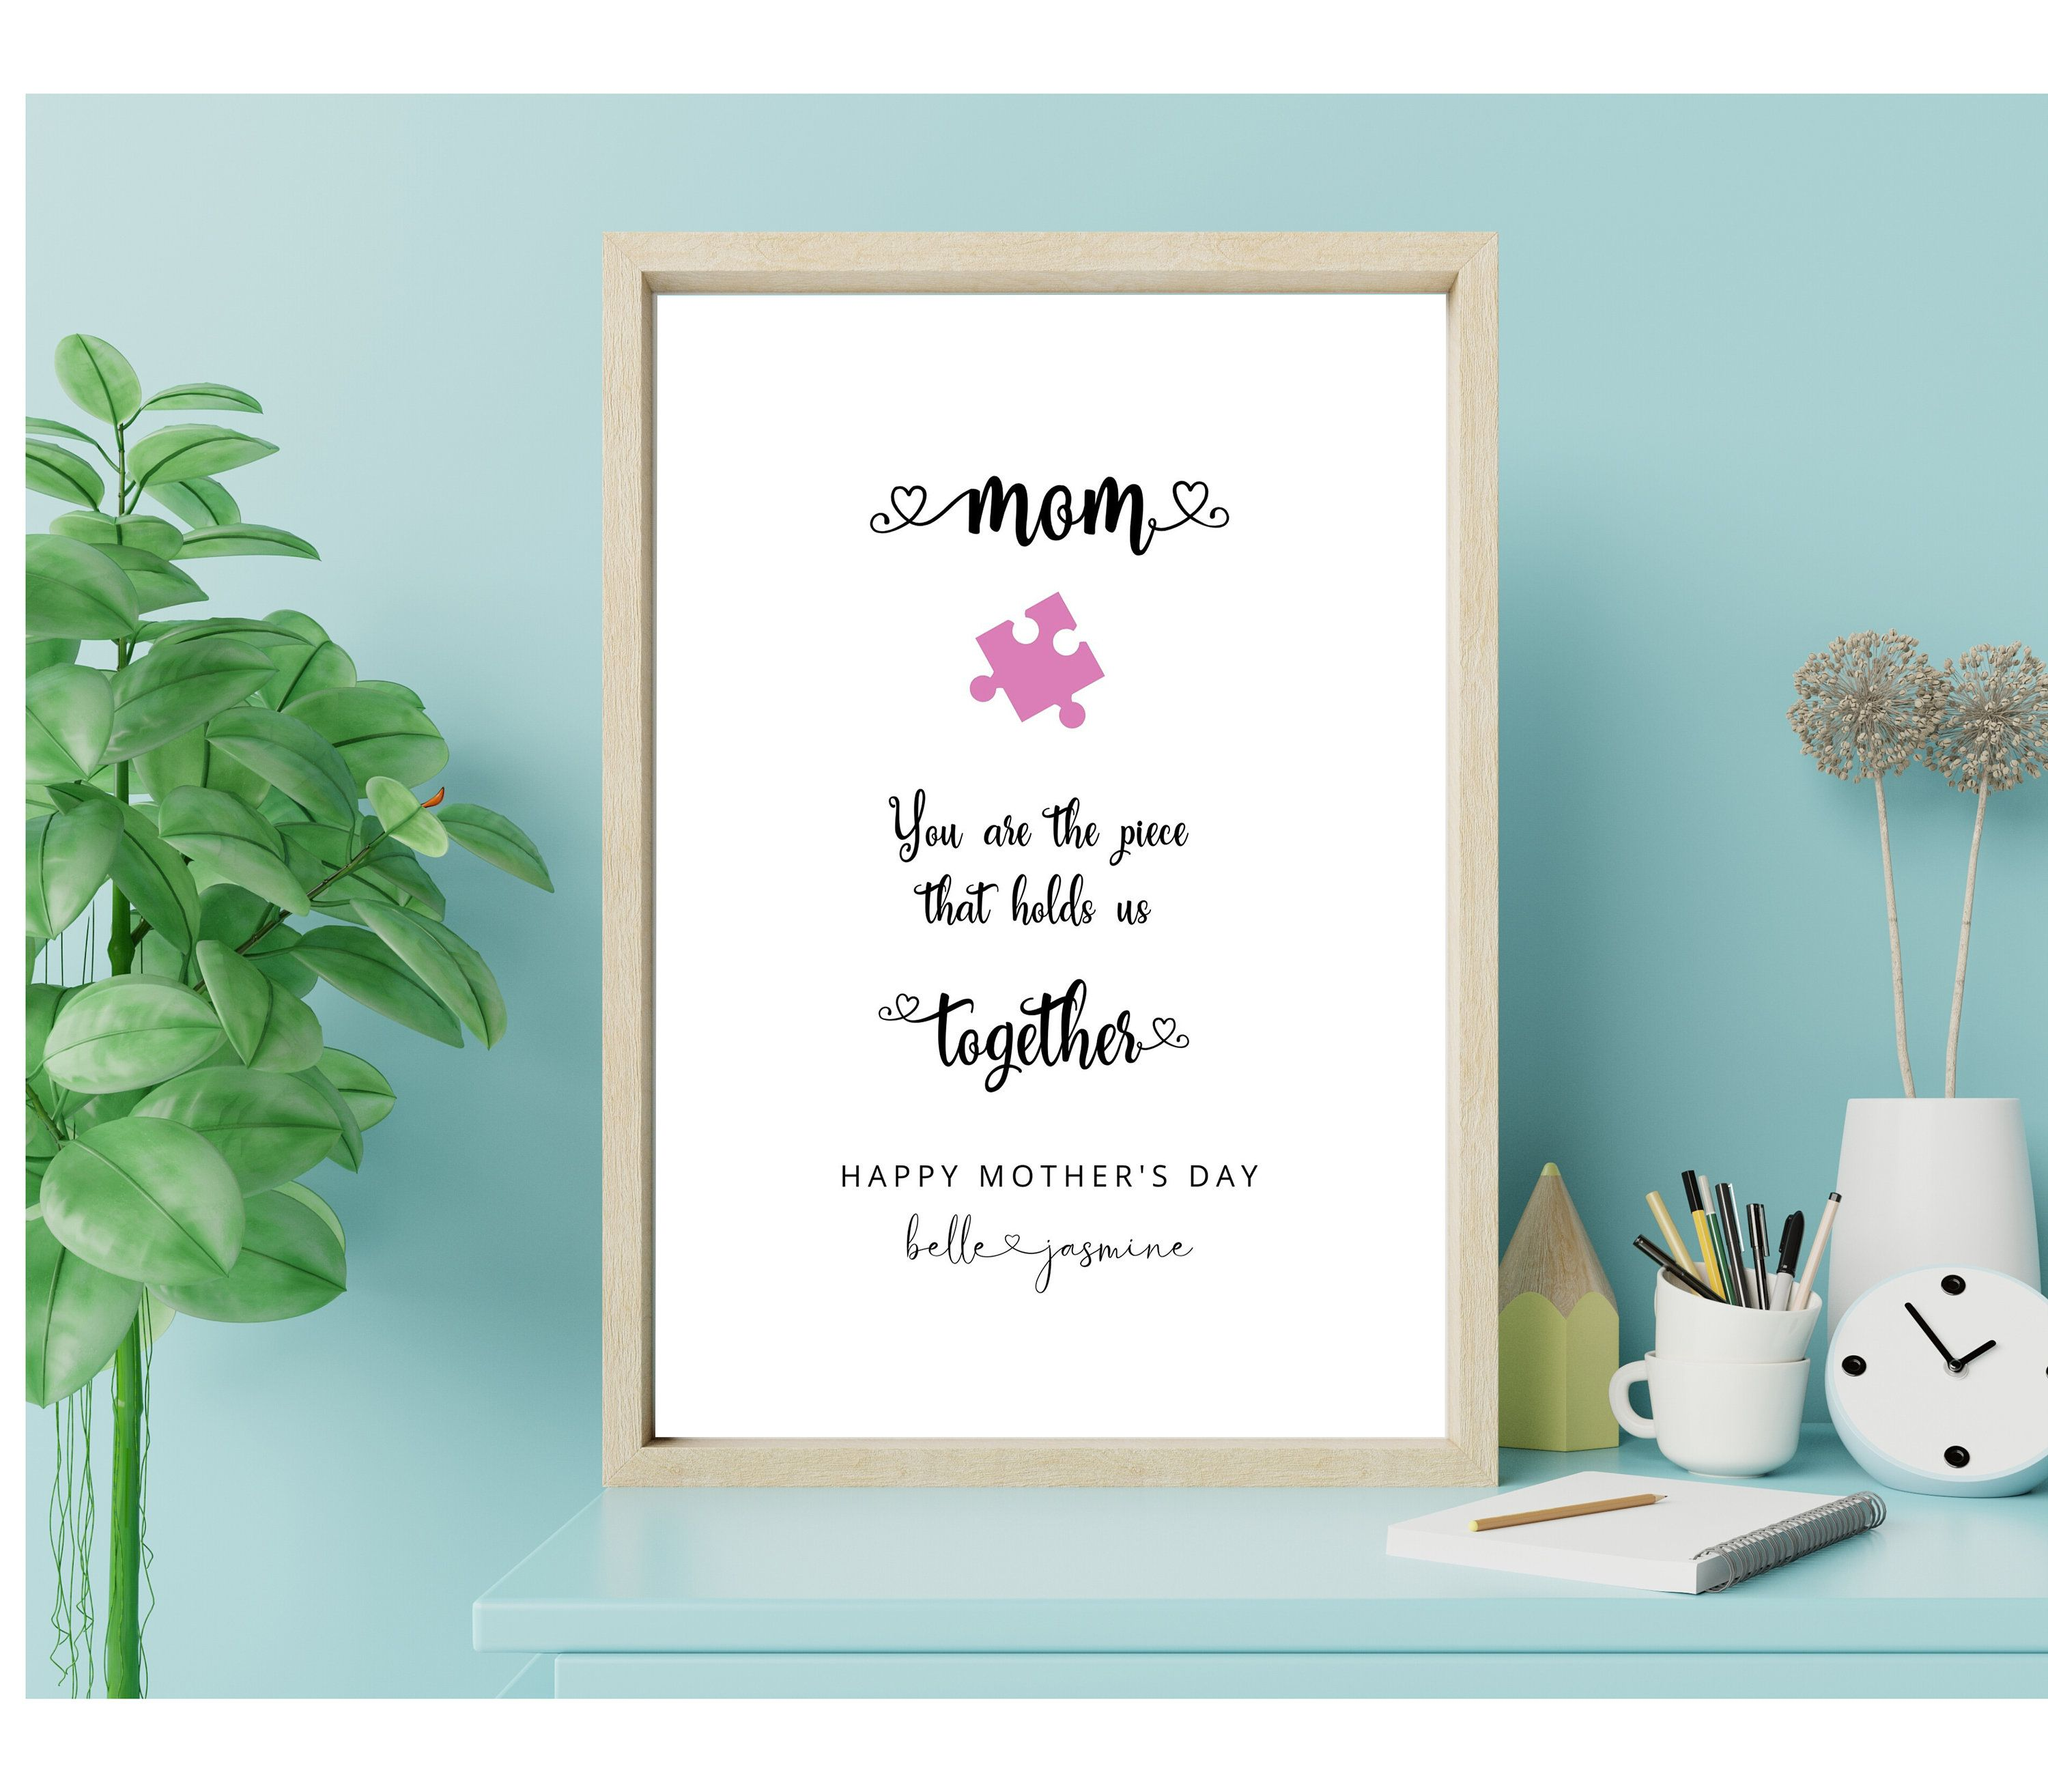 Personalized Wall Art Mom Gift From Daughter Custom Etsy Personalized Wall Art Mom Art Gifts For Mom